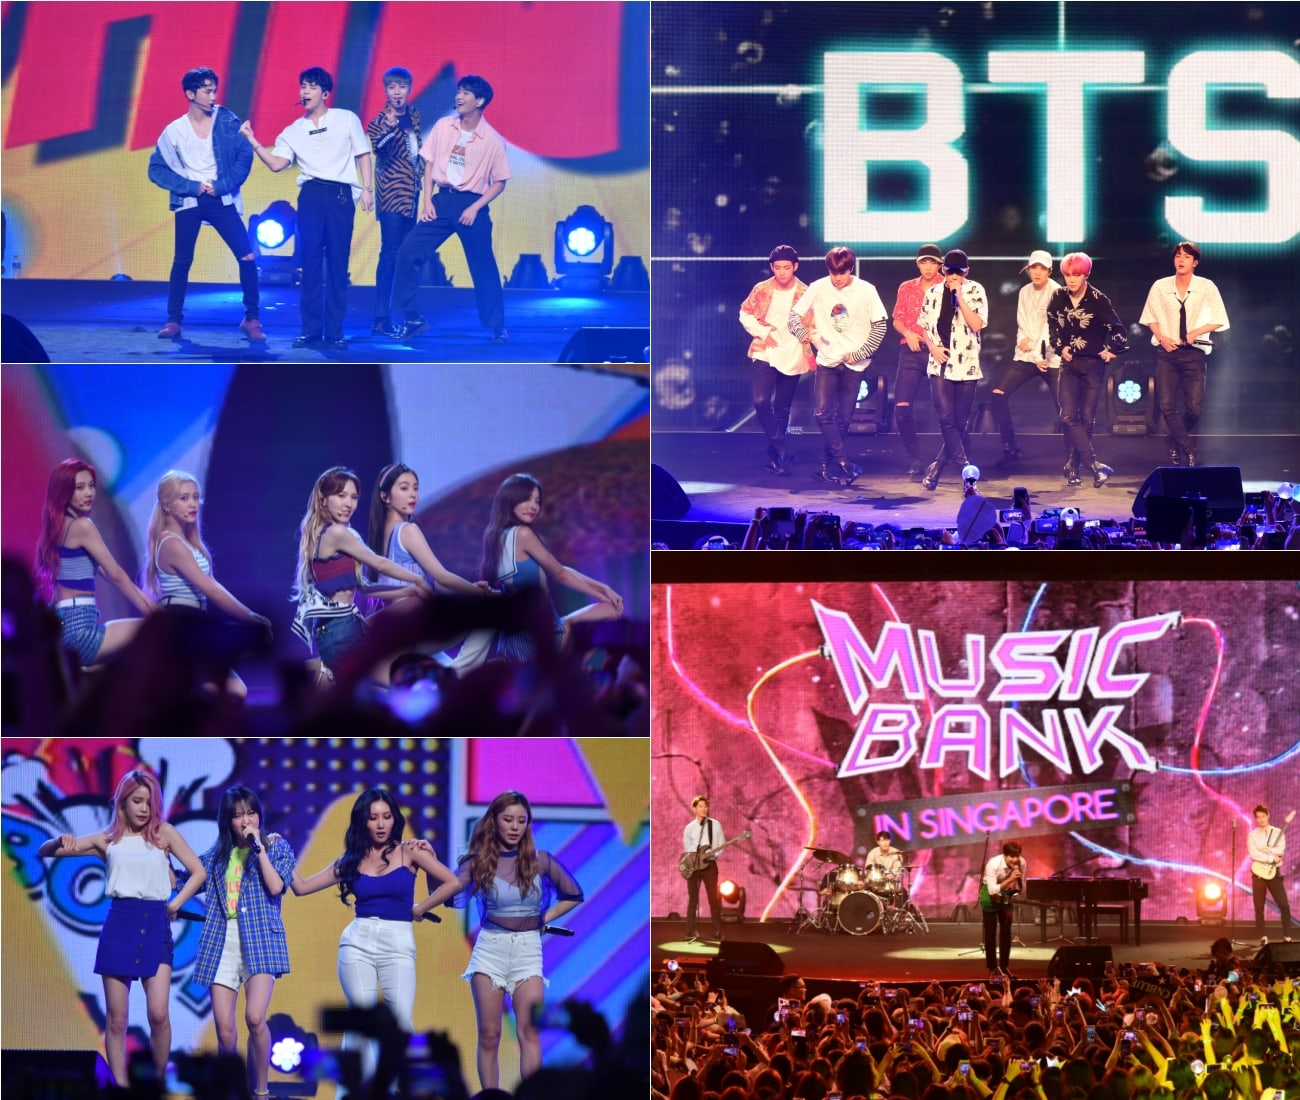 Watch: BTS, SHINee, Red Velvet, CNBLUE, And MAMAMOO Perform At Music Bank In Singapore